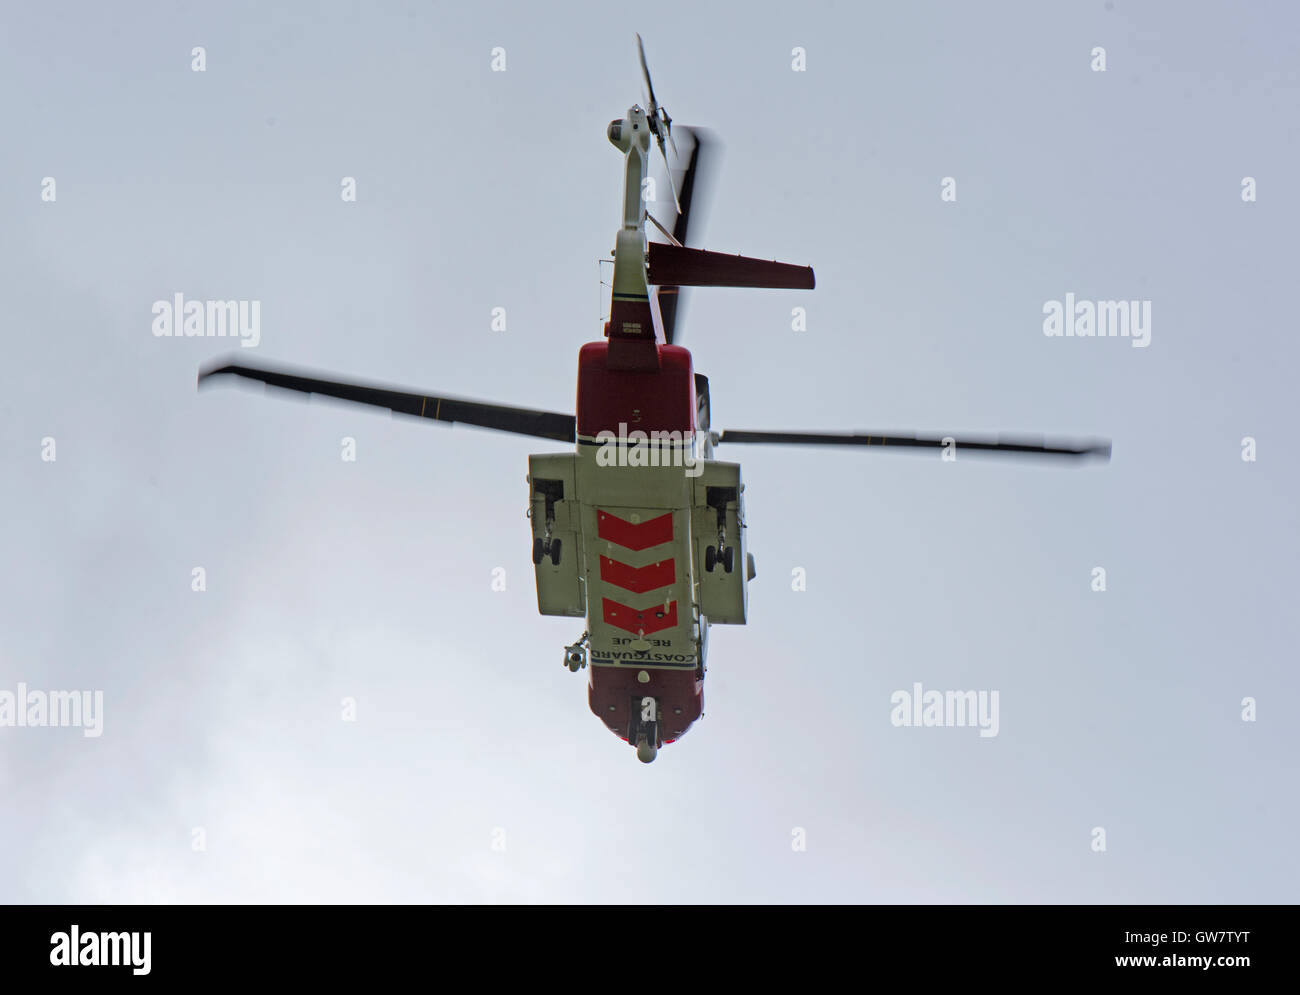 Sikorsky S-92A Coastguard SAR Helicopter (G-MCGI) based at Inverness. SCO 11,248. - Stock Image